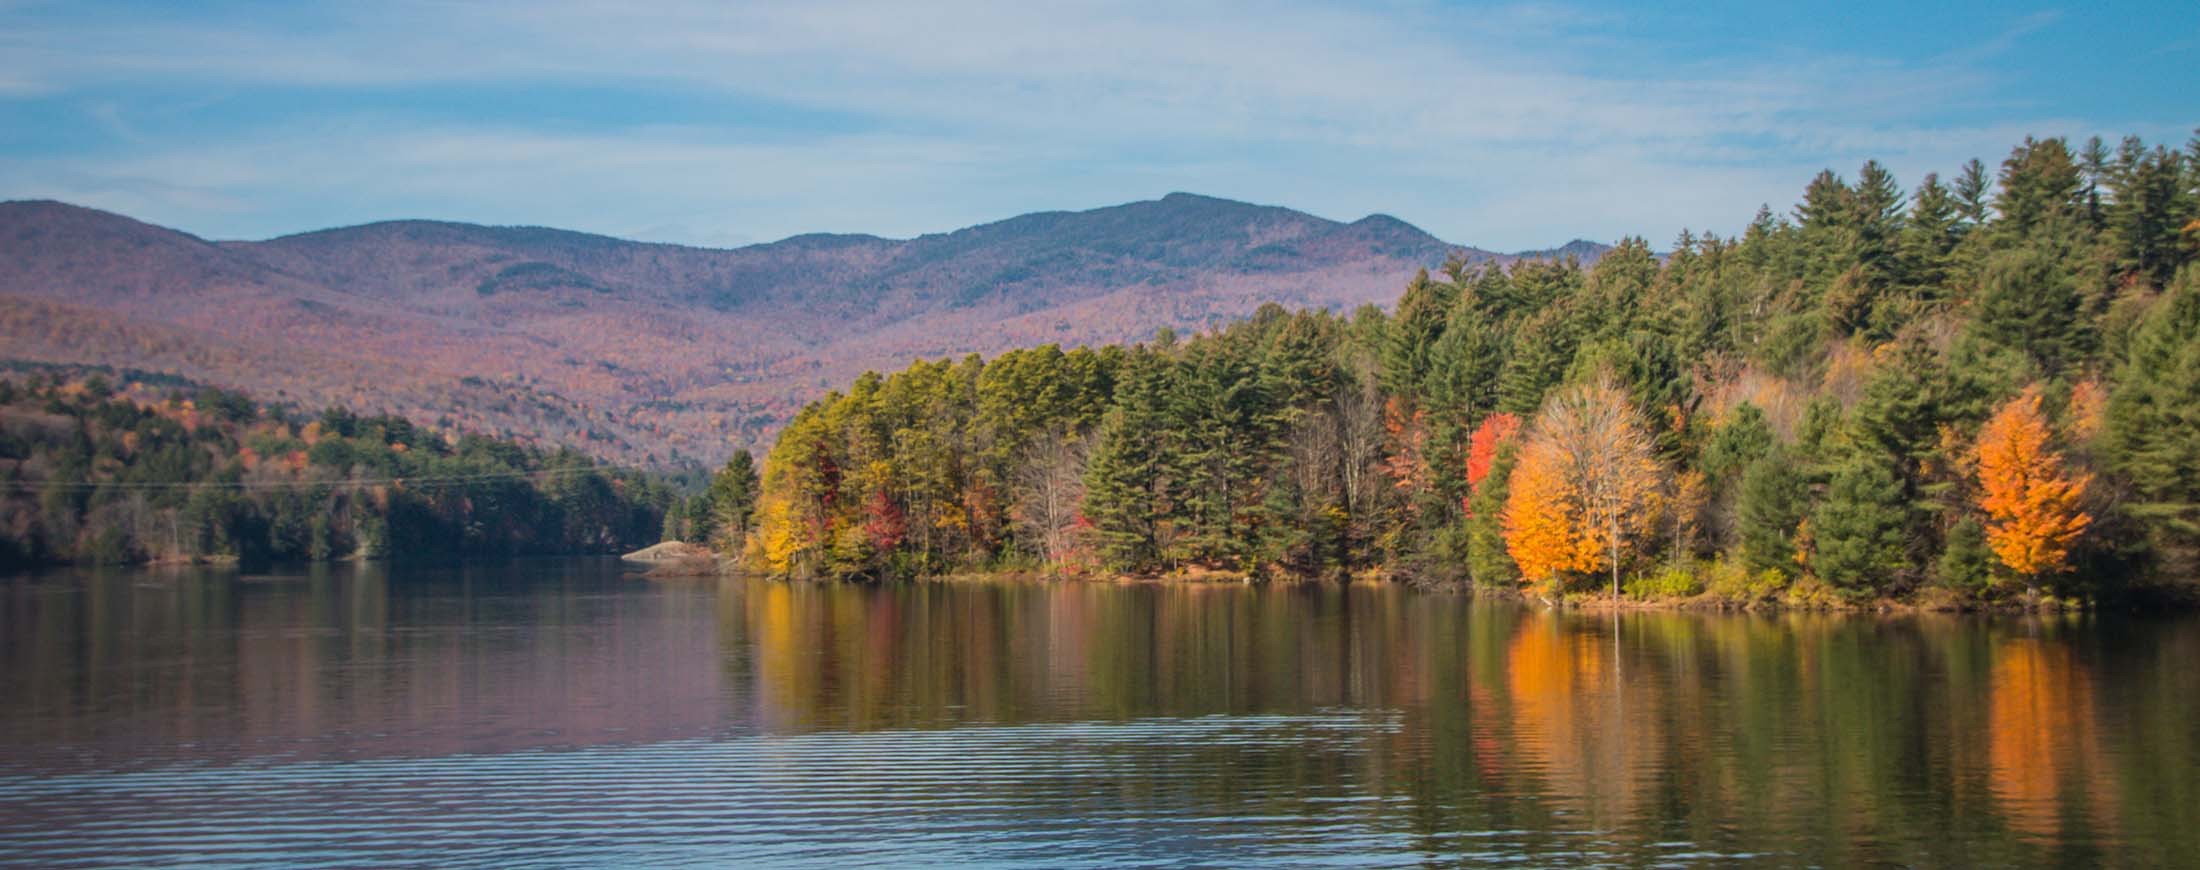 A view of a lake surrounded by mountains and trees that are turning red, orange and yellow in the fall. ge an